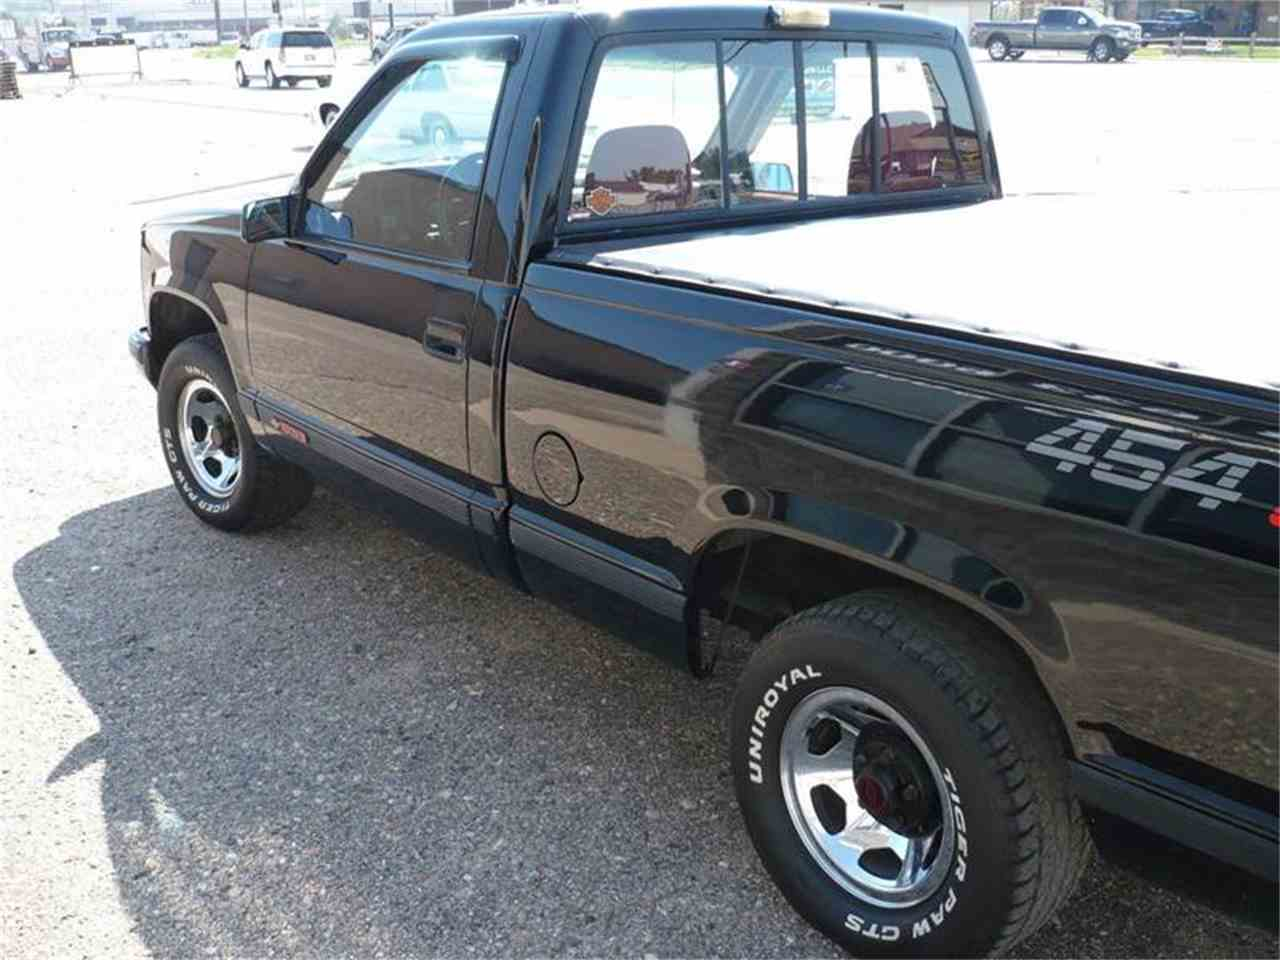 Large Picture of 1990 Chevrolet C/K 1500 located in Scottsbluff Nebraska - $20,500.00 Offered by Steve's Auto Sales Inc. - LU03